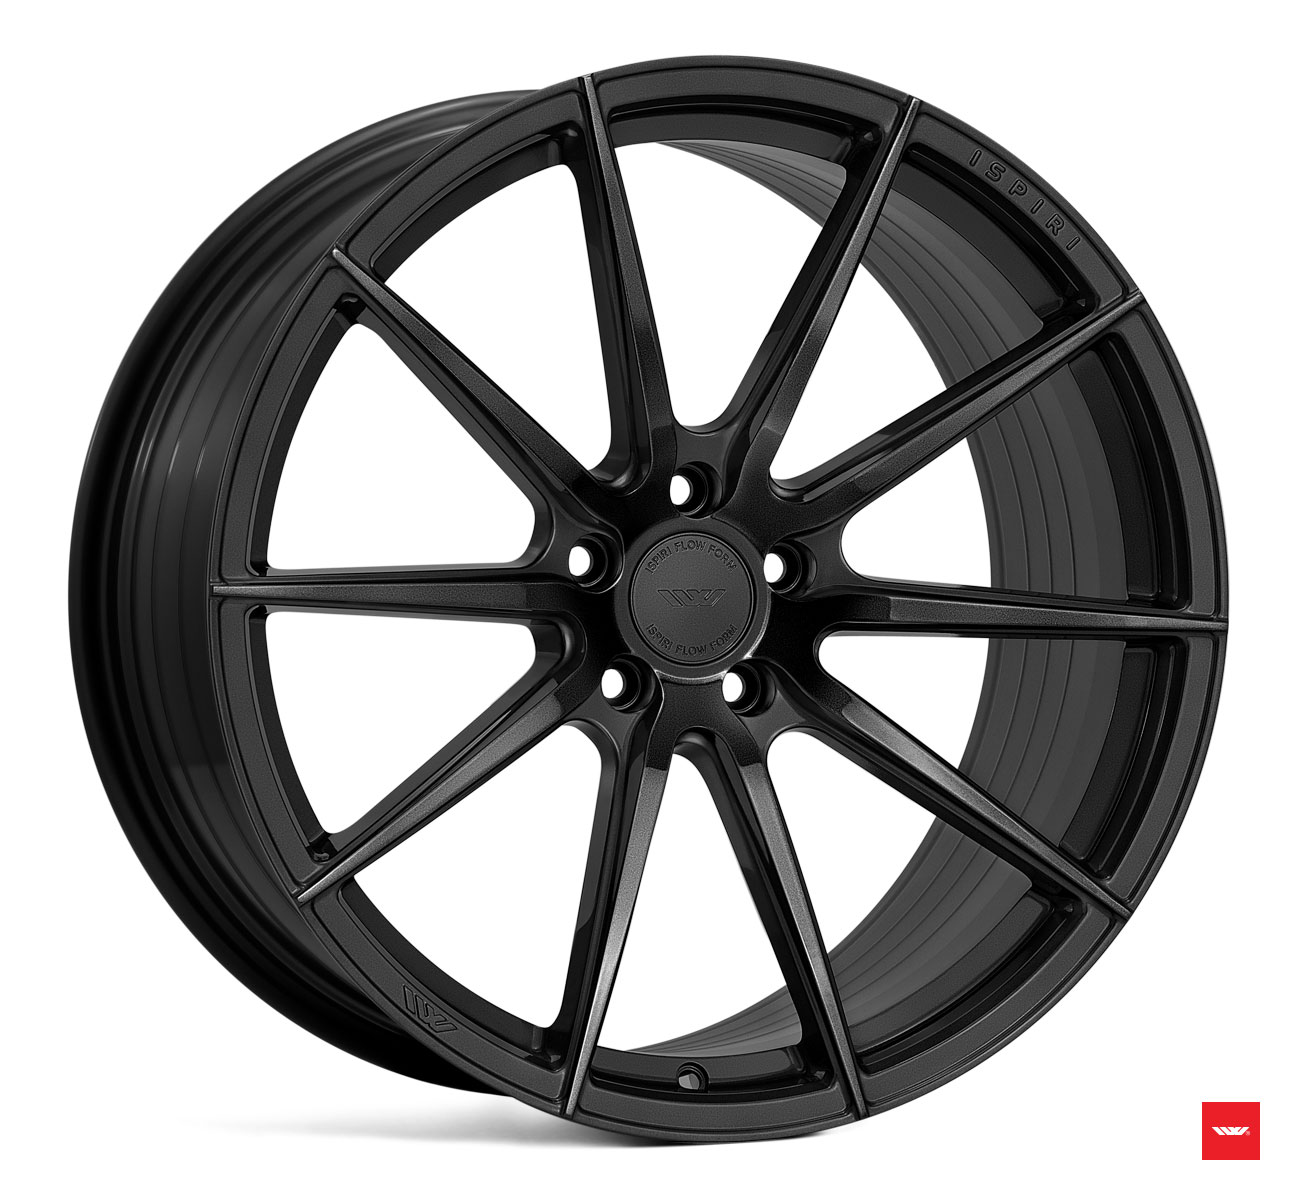 "NEW 20"" ISPIRI FFR1 MULTI-SPOKE ALLOY WHEELS IN CORSA BLACK, DEEPER CONCAVE 10"" REARS et42/45"